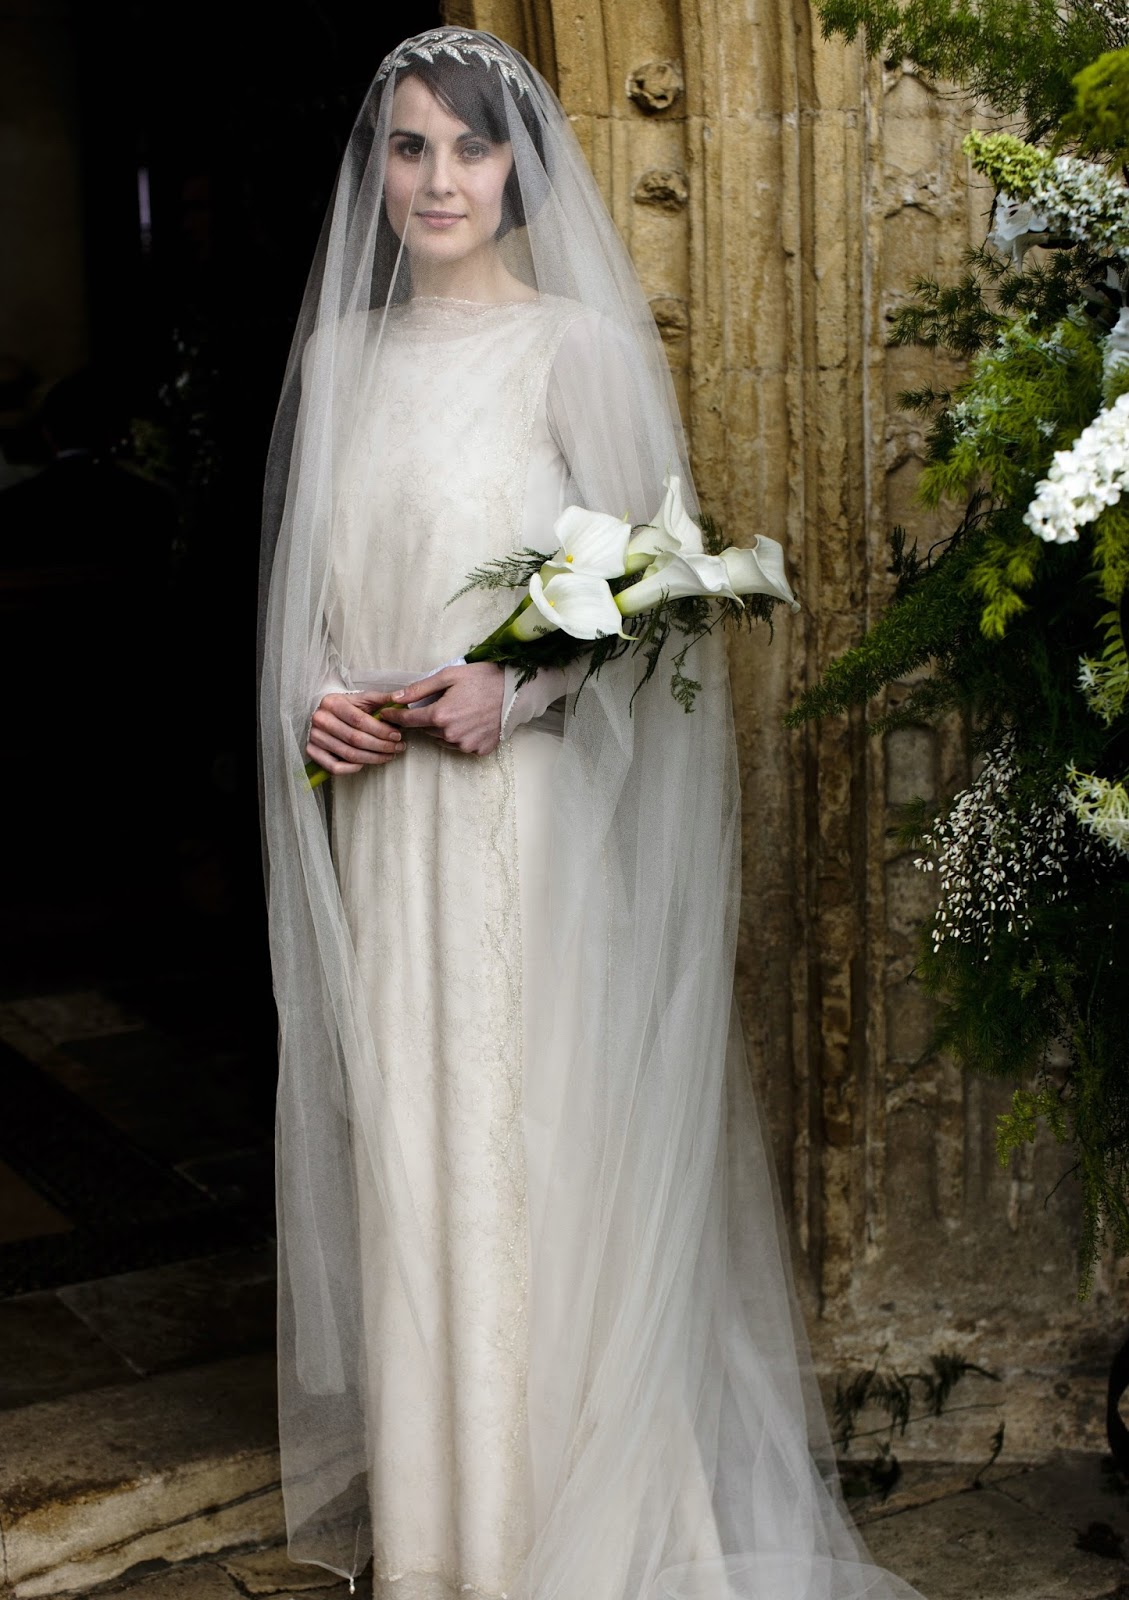 Dressybridal marry 39 s long sleeved wedding dress downton for Downton abbey style wedding dress